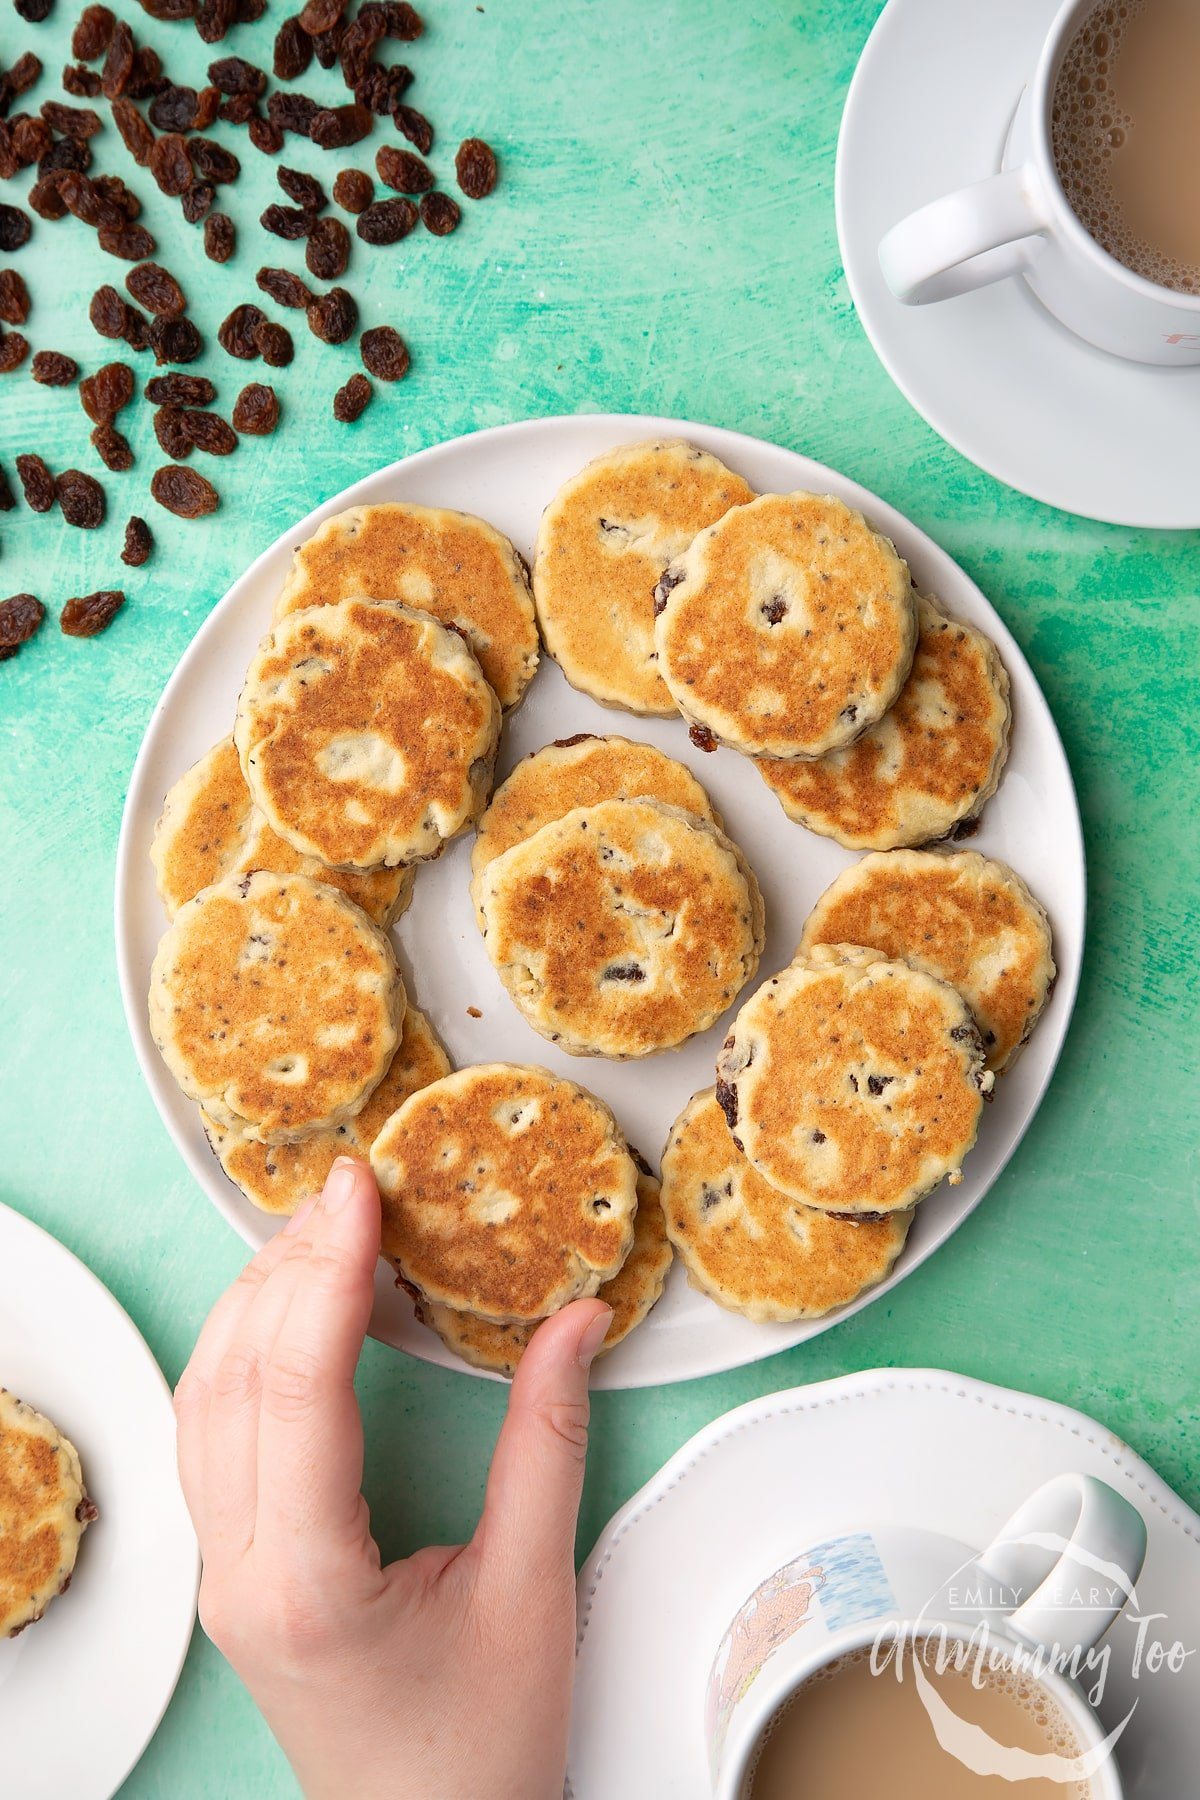 Vegan Welsh cakes arranged on a white plate. Surrounding the plate are cups of tea. A hand reaches in to take a Welsh cake.